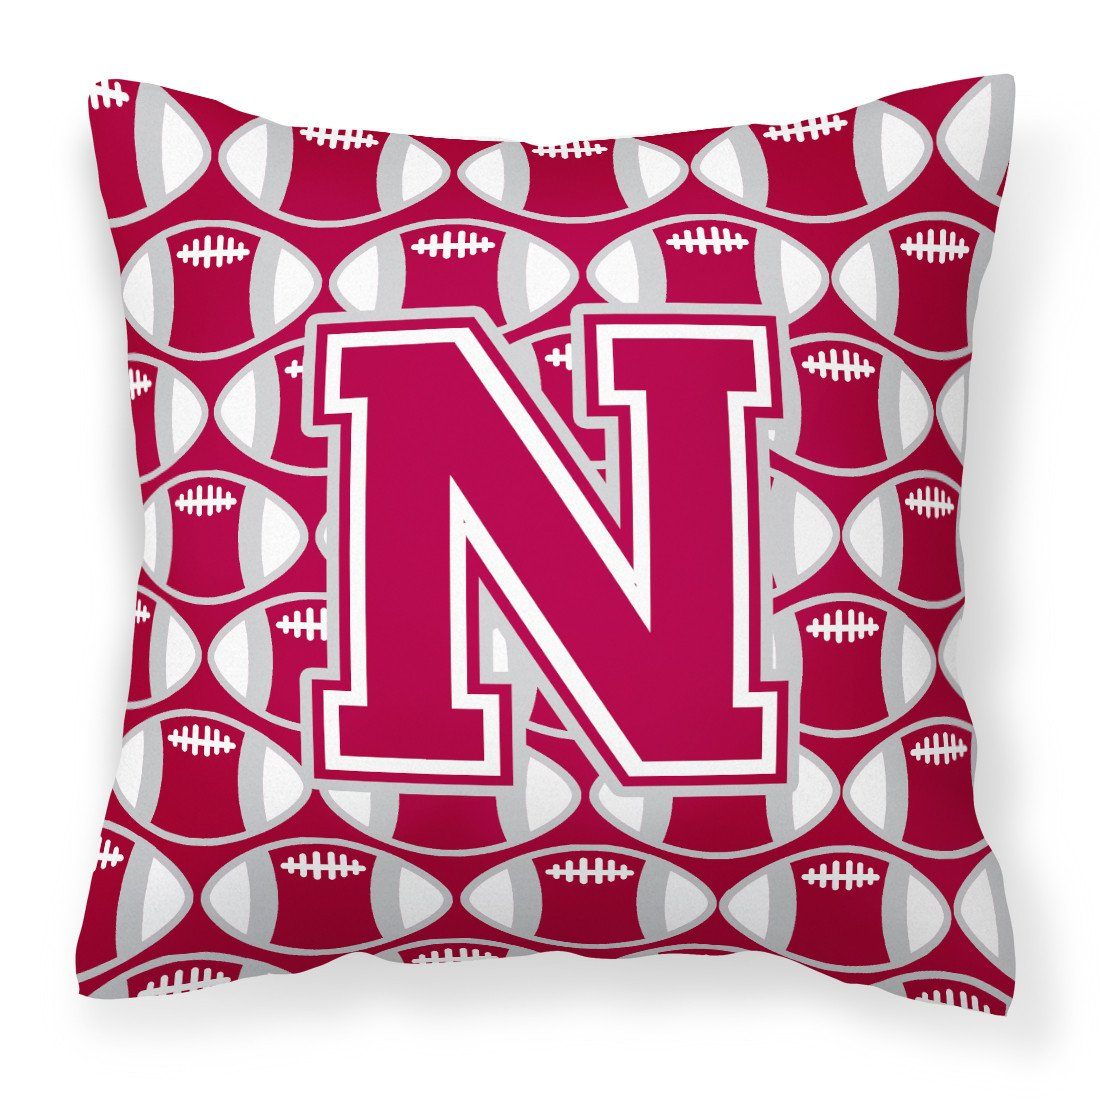 Letter N Football Crimson, grey and white Fabric Decorative Pillow CJ1065-NPW1414 by Caroline's Treasures